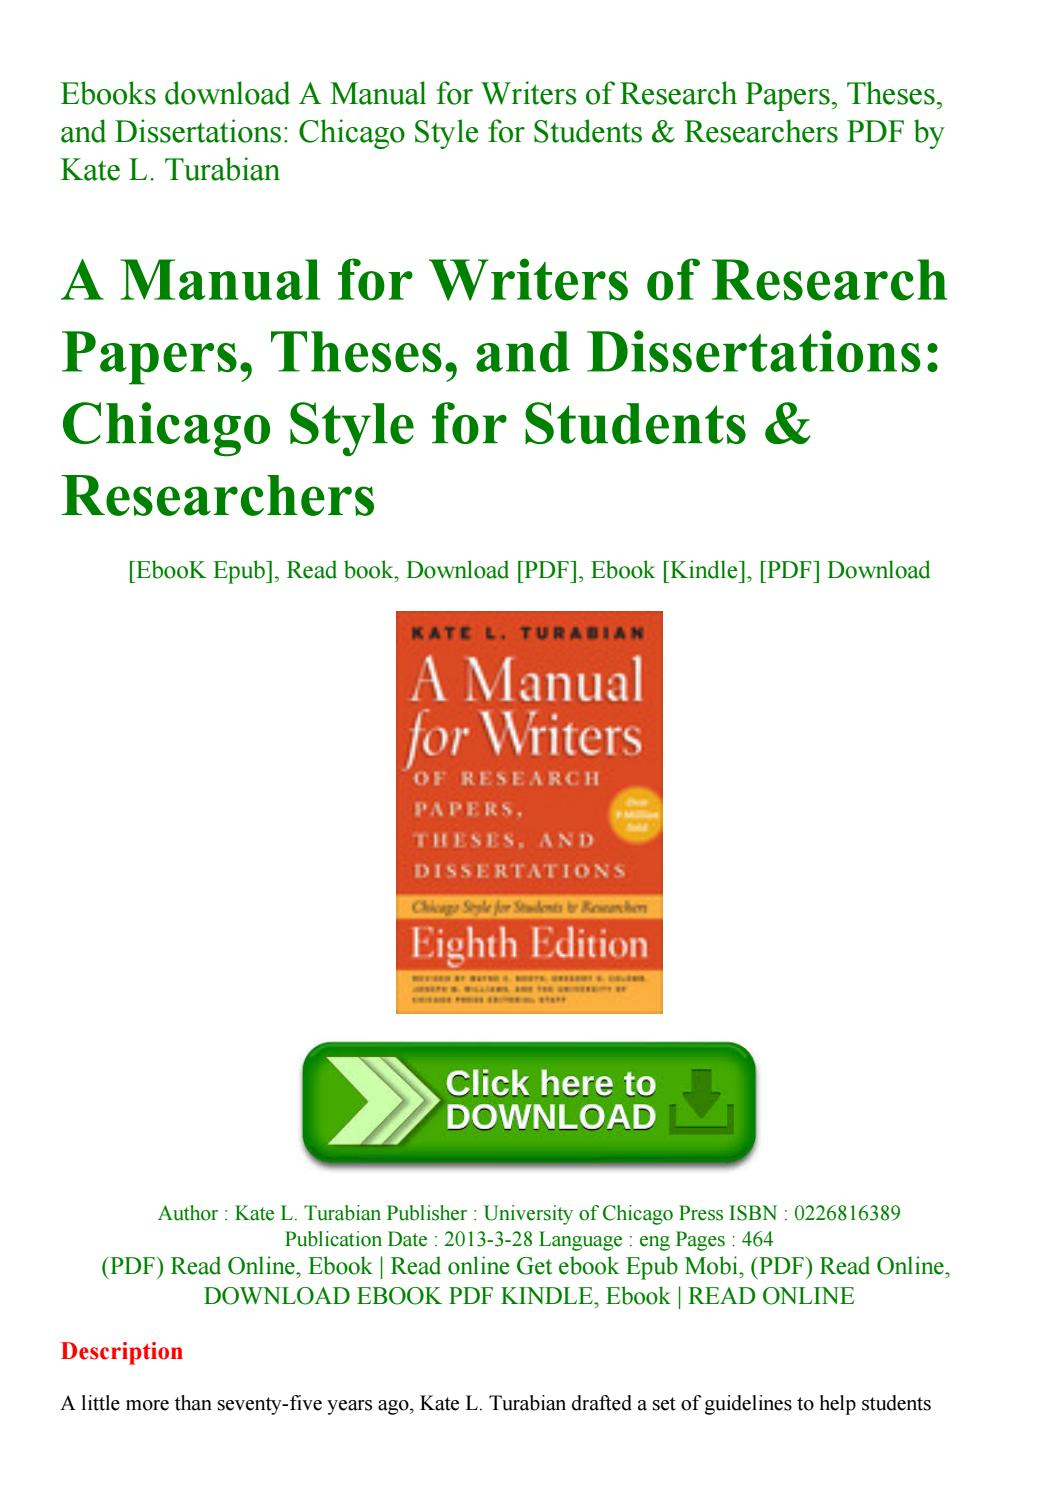 018 Page 1 Research Paper Manual For Writers Of Papers Theses And Sensational A Dissertations Ed. 8 Turabian Ninth Edition Full